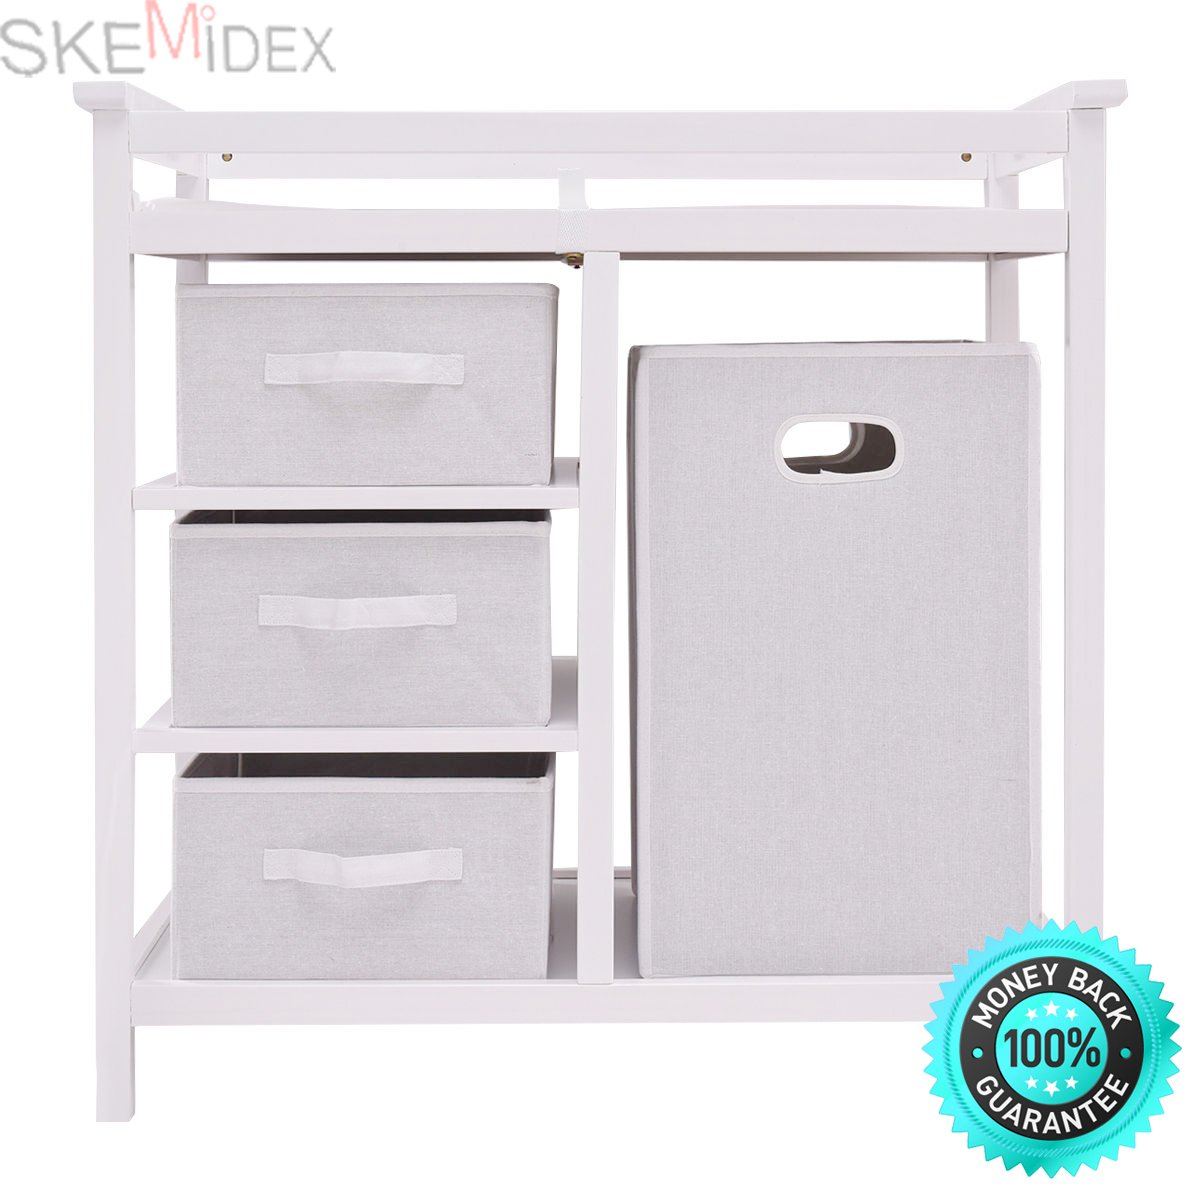 SKEMiDEX---White Infant Baby Changing Table 3 Basket Hamper Diaper Daycare Storage Nursery. Three small baskets for baby's toiletries, socks and other small items